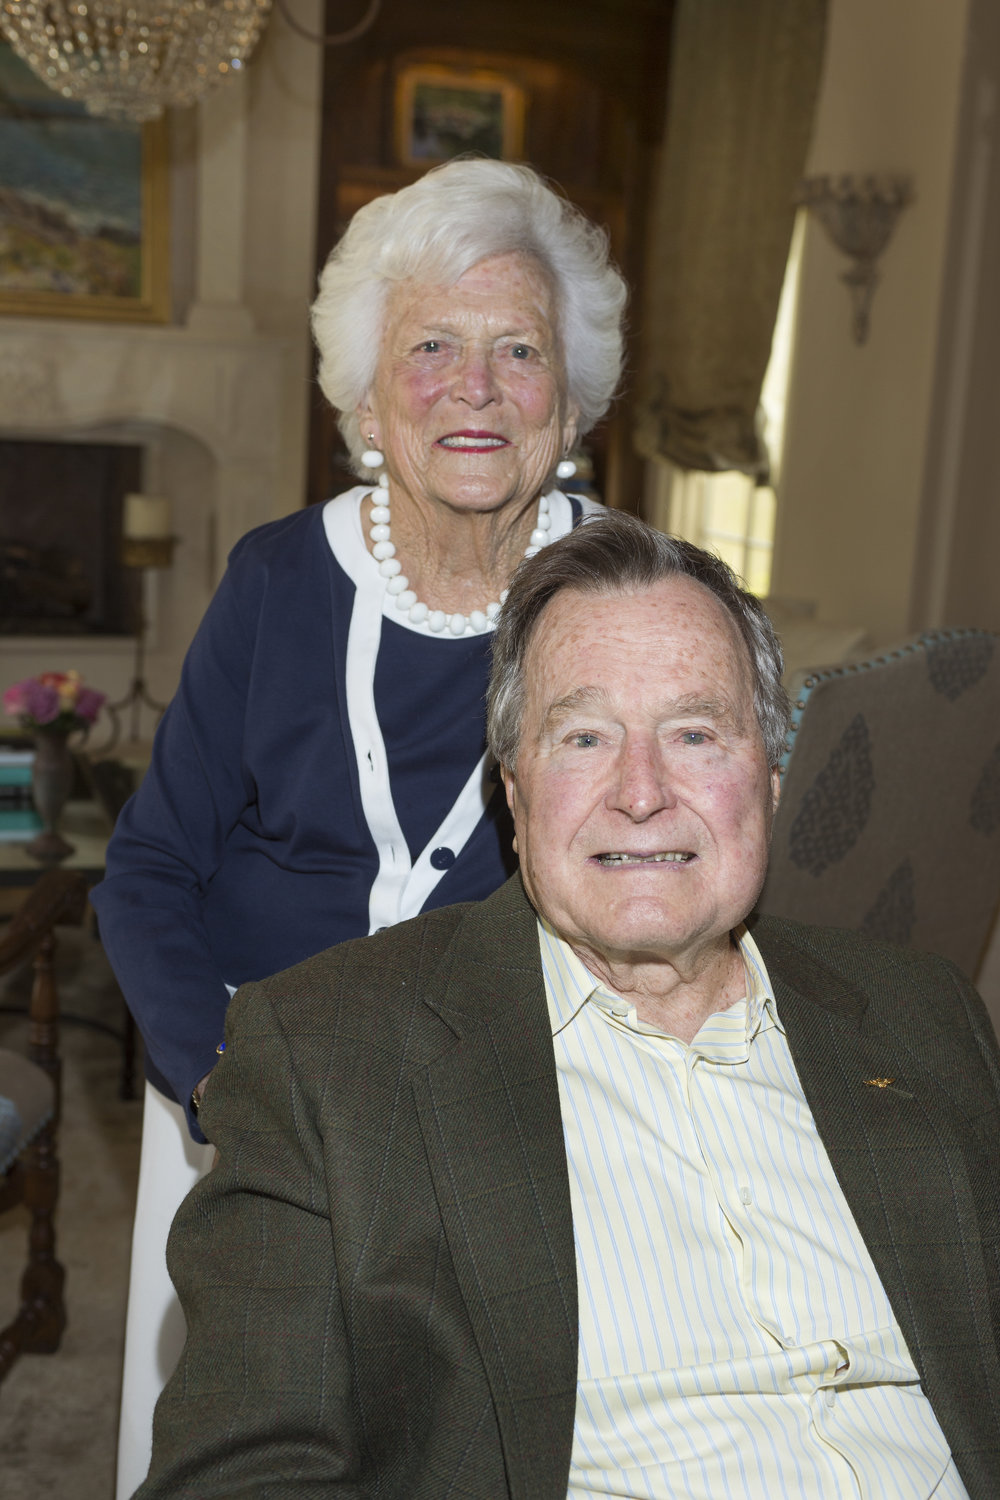 Mr & Mrs Bush.jpg